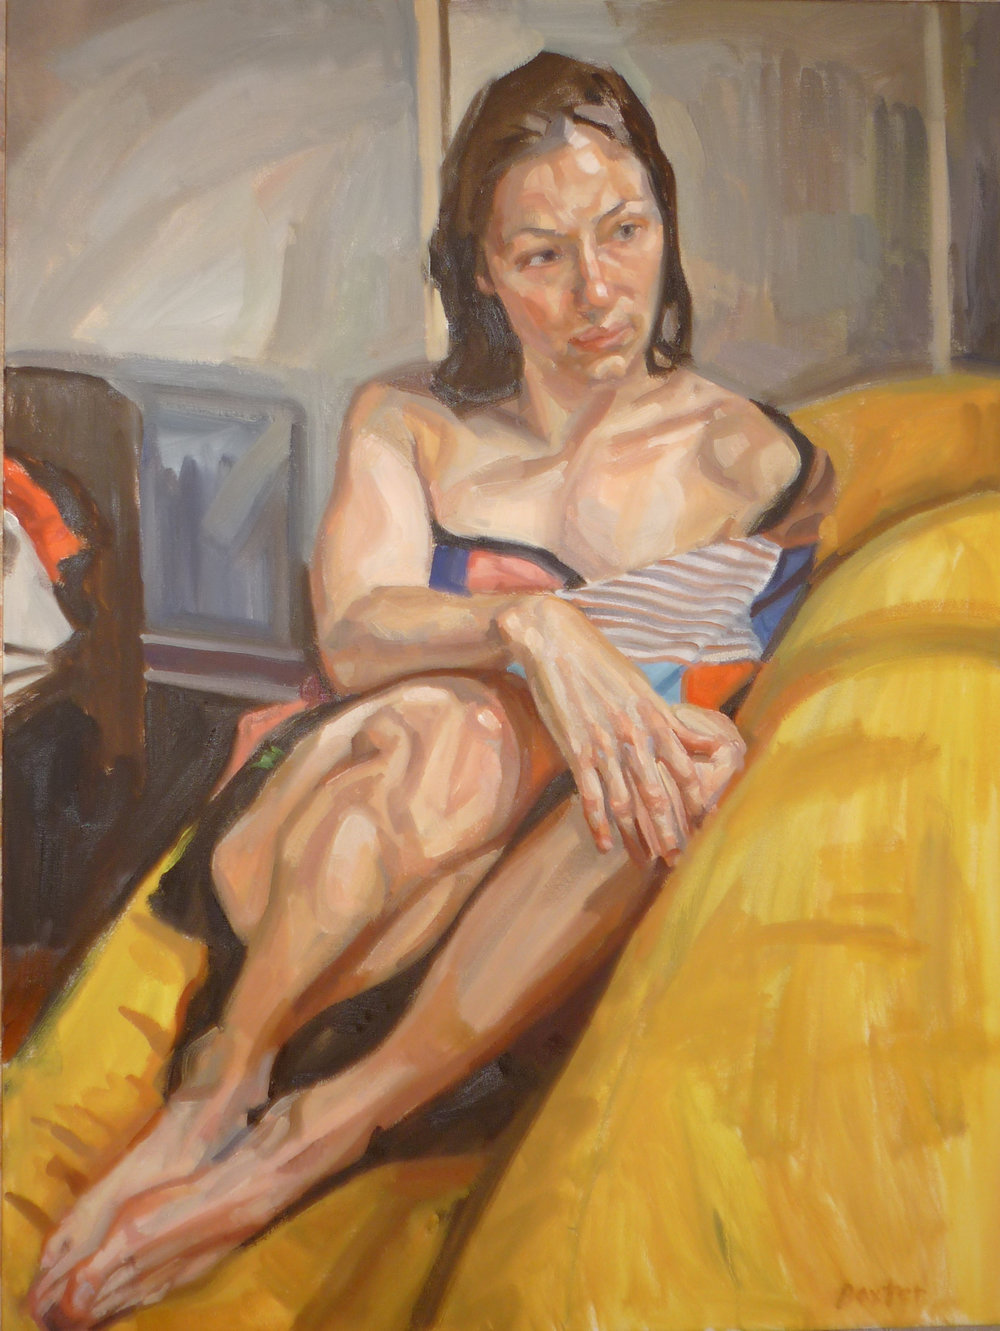 Woman on Yellow Couch  by Baxter Knowlton